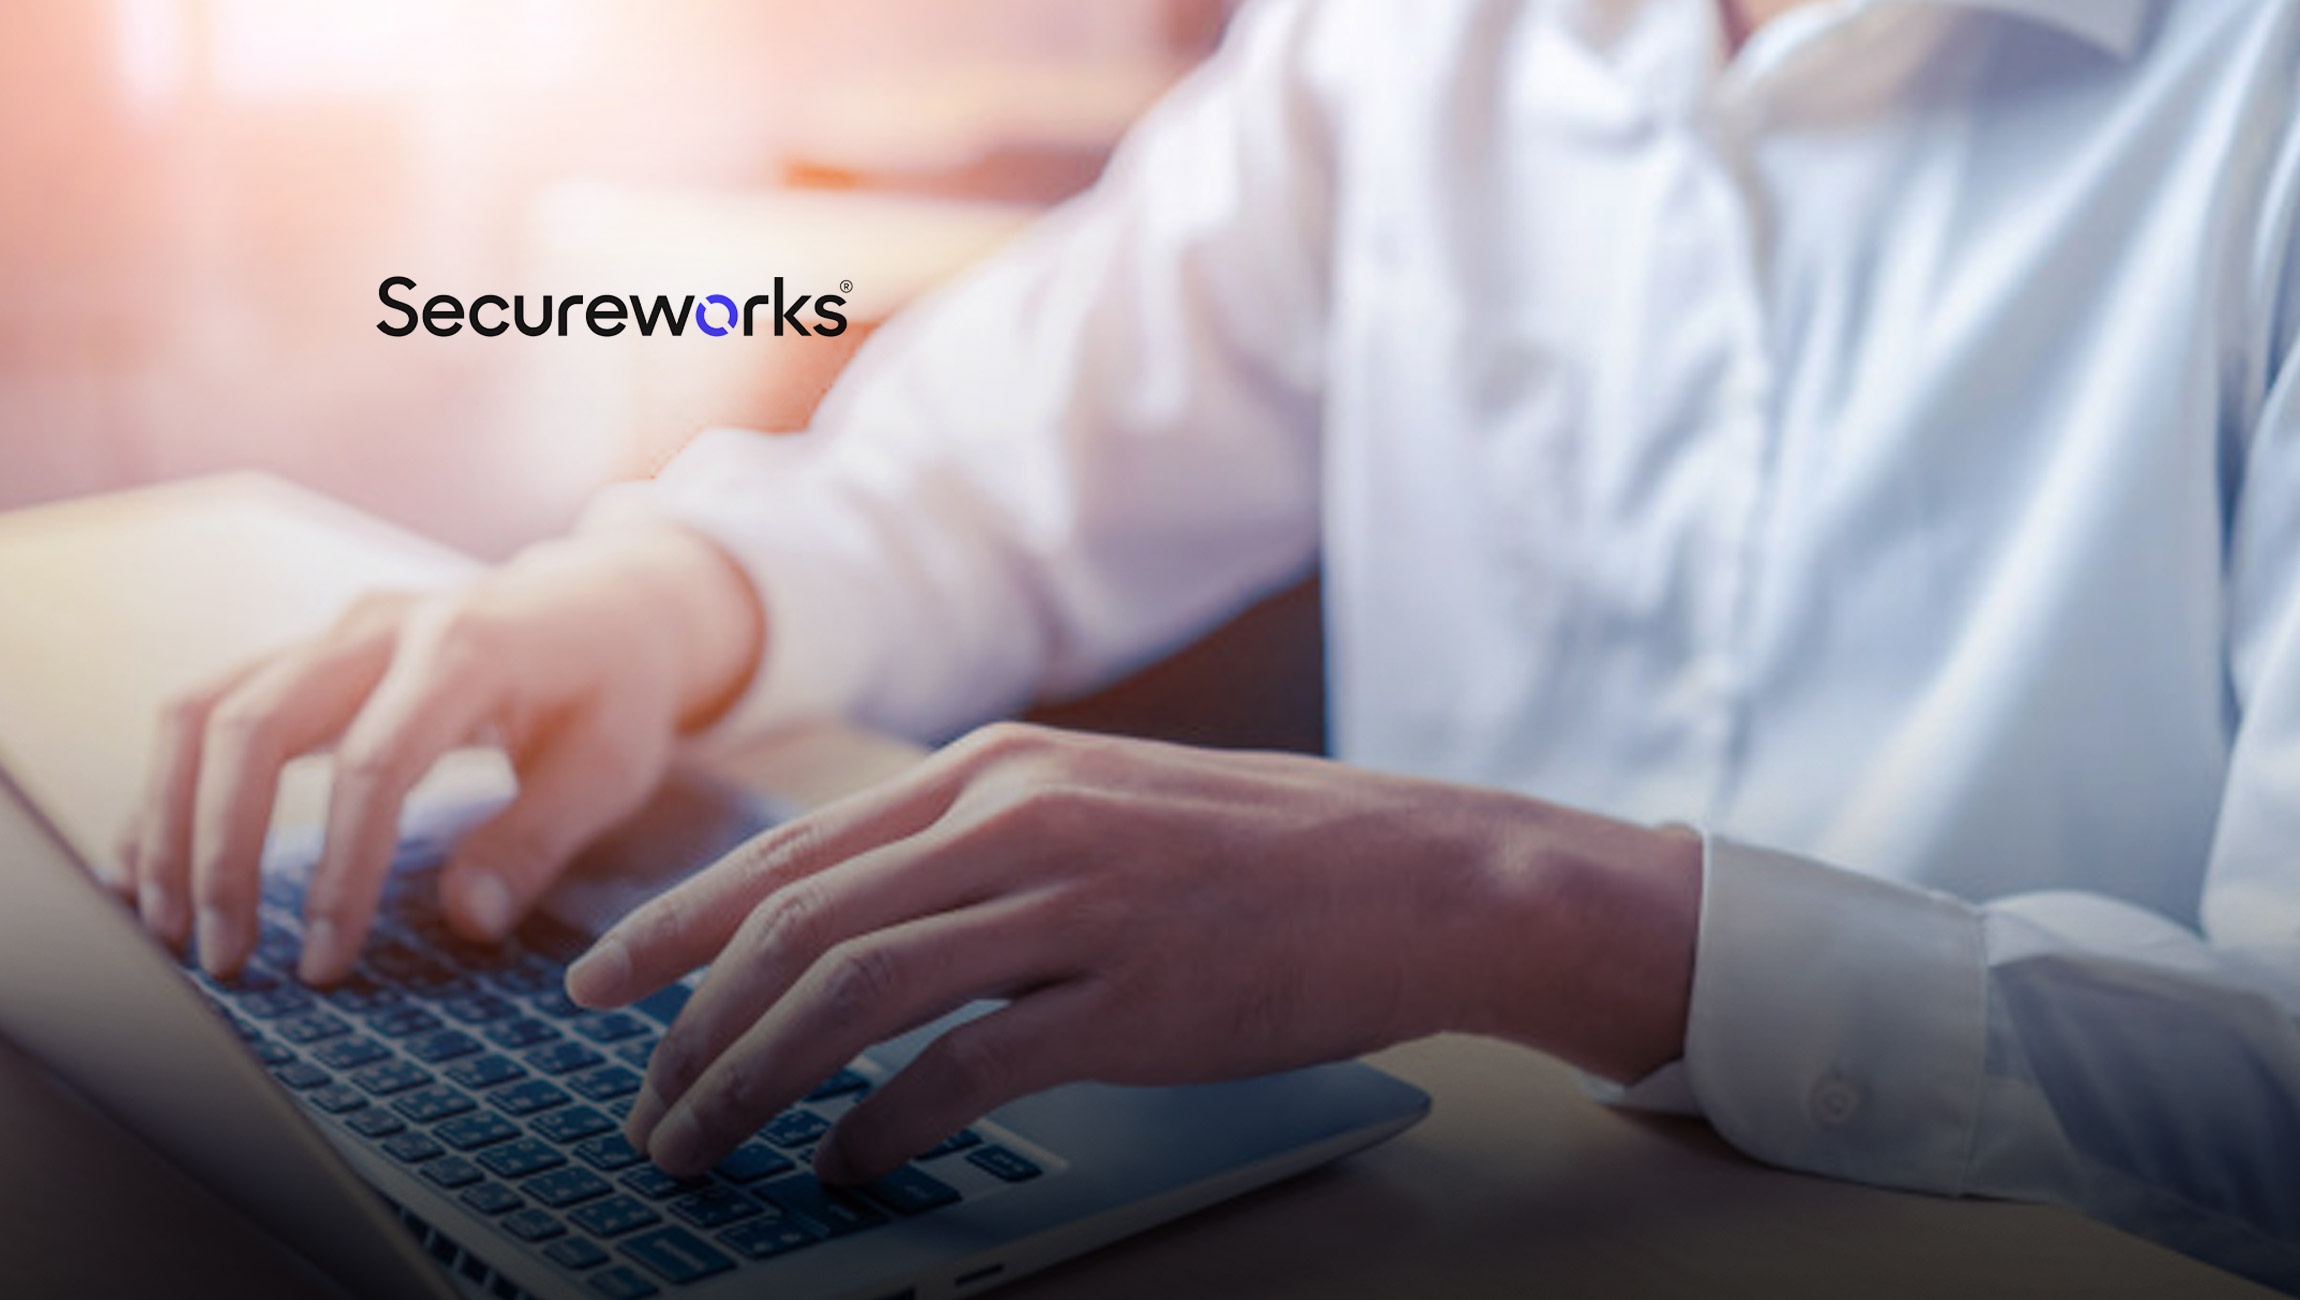 Secureworks Launches New Global Partner Program to Address Growing Demand for Cybersecurity Solutions